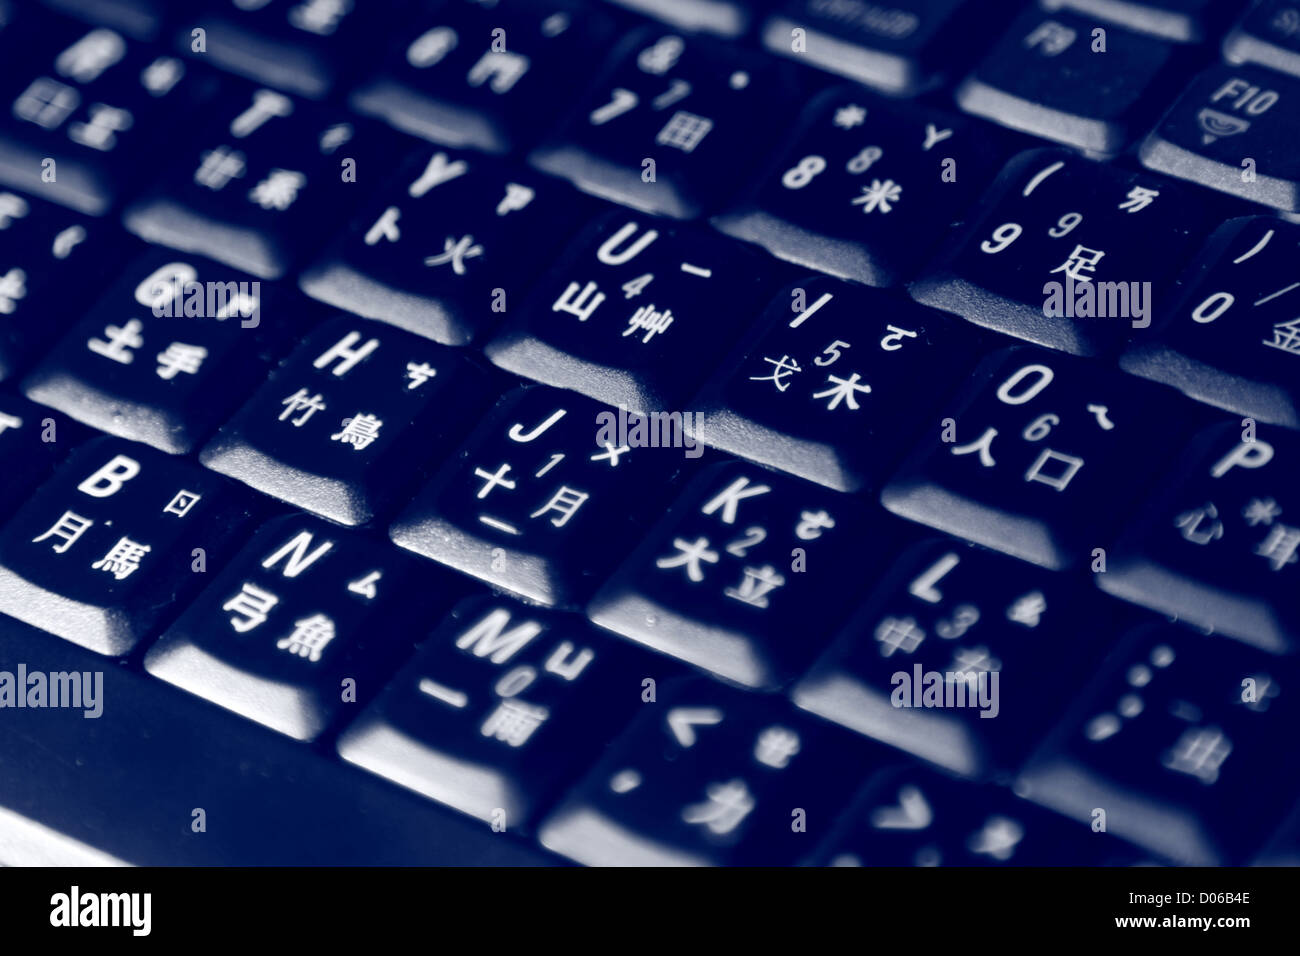 Keyboards with lights Stock Photo